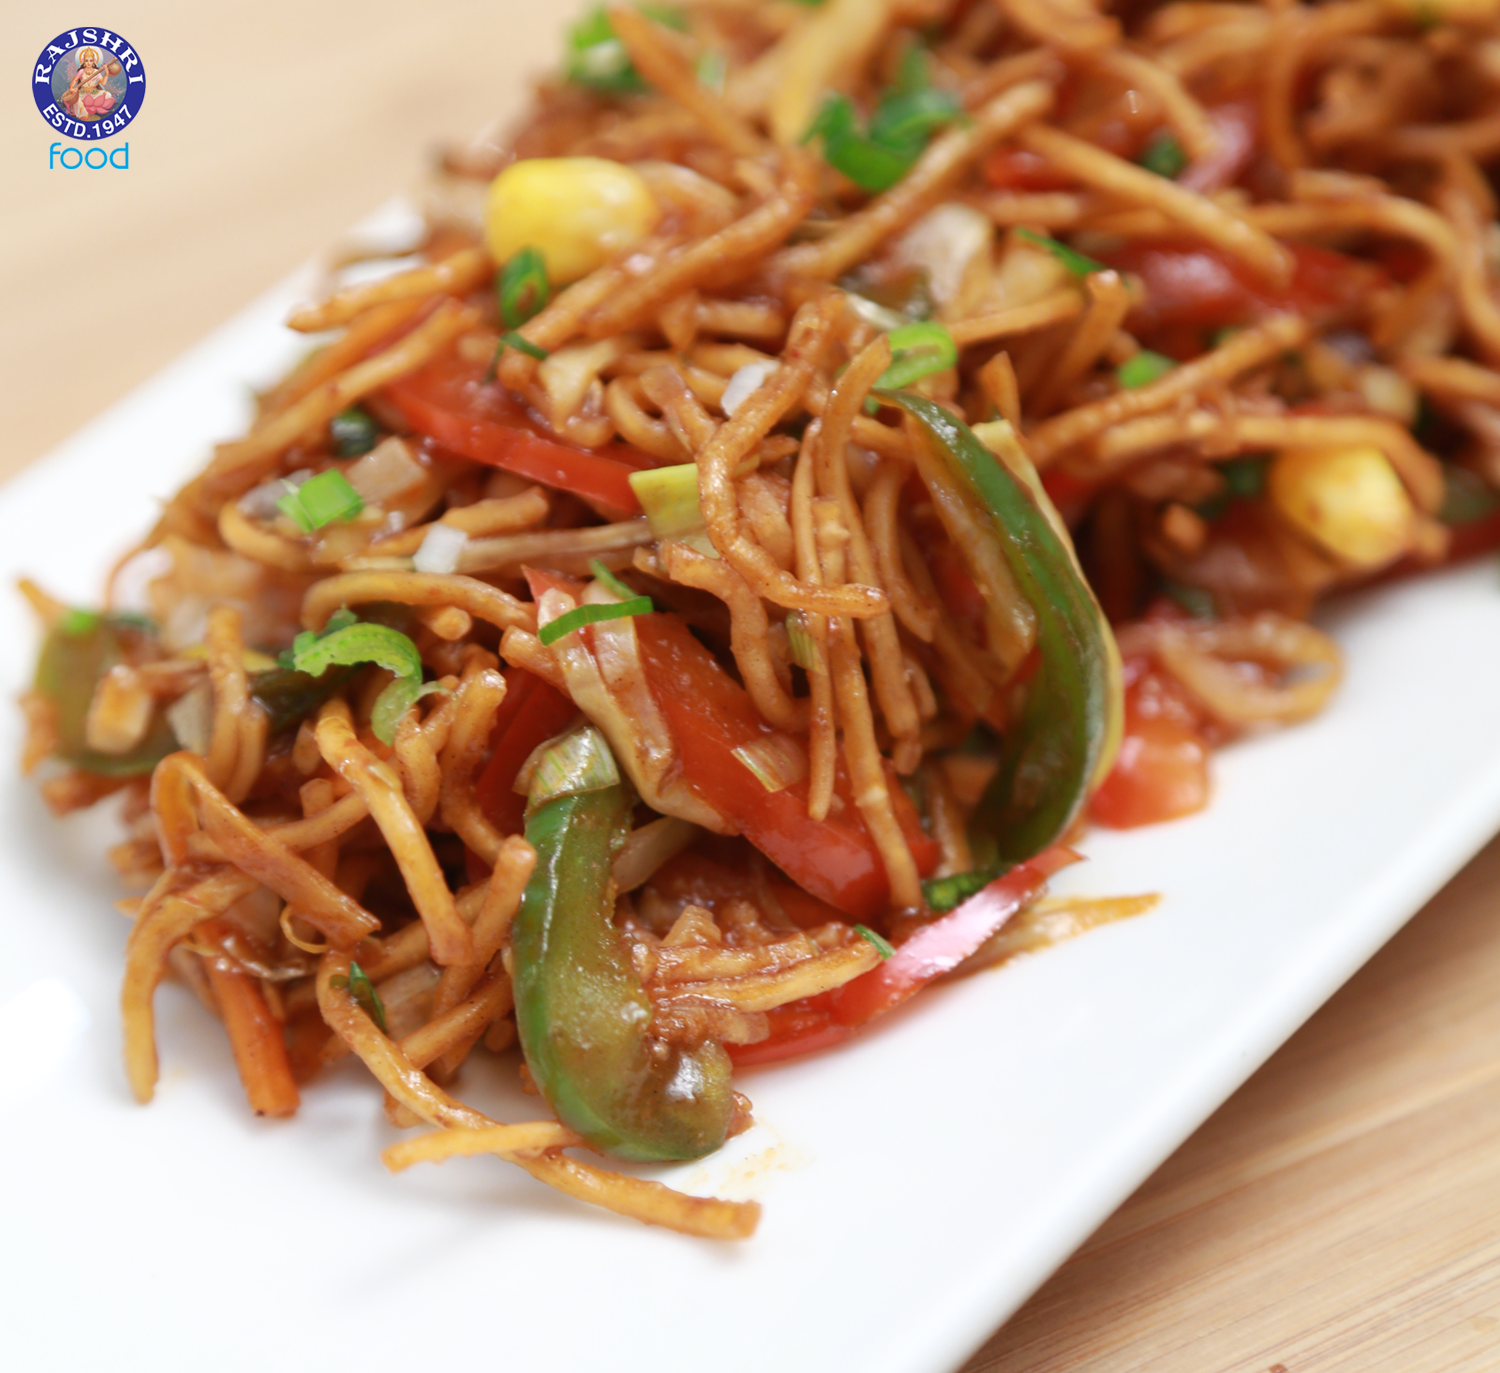 Chinese bhel indian fast food recipe vegetarian snack recipe chinese bhel indian fast food recipe vegetarian snack recipe by forumfinder Images